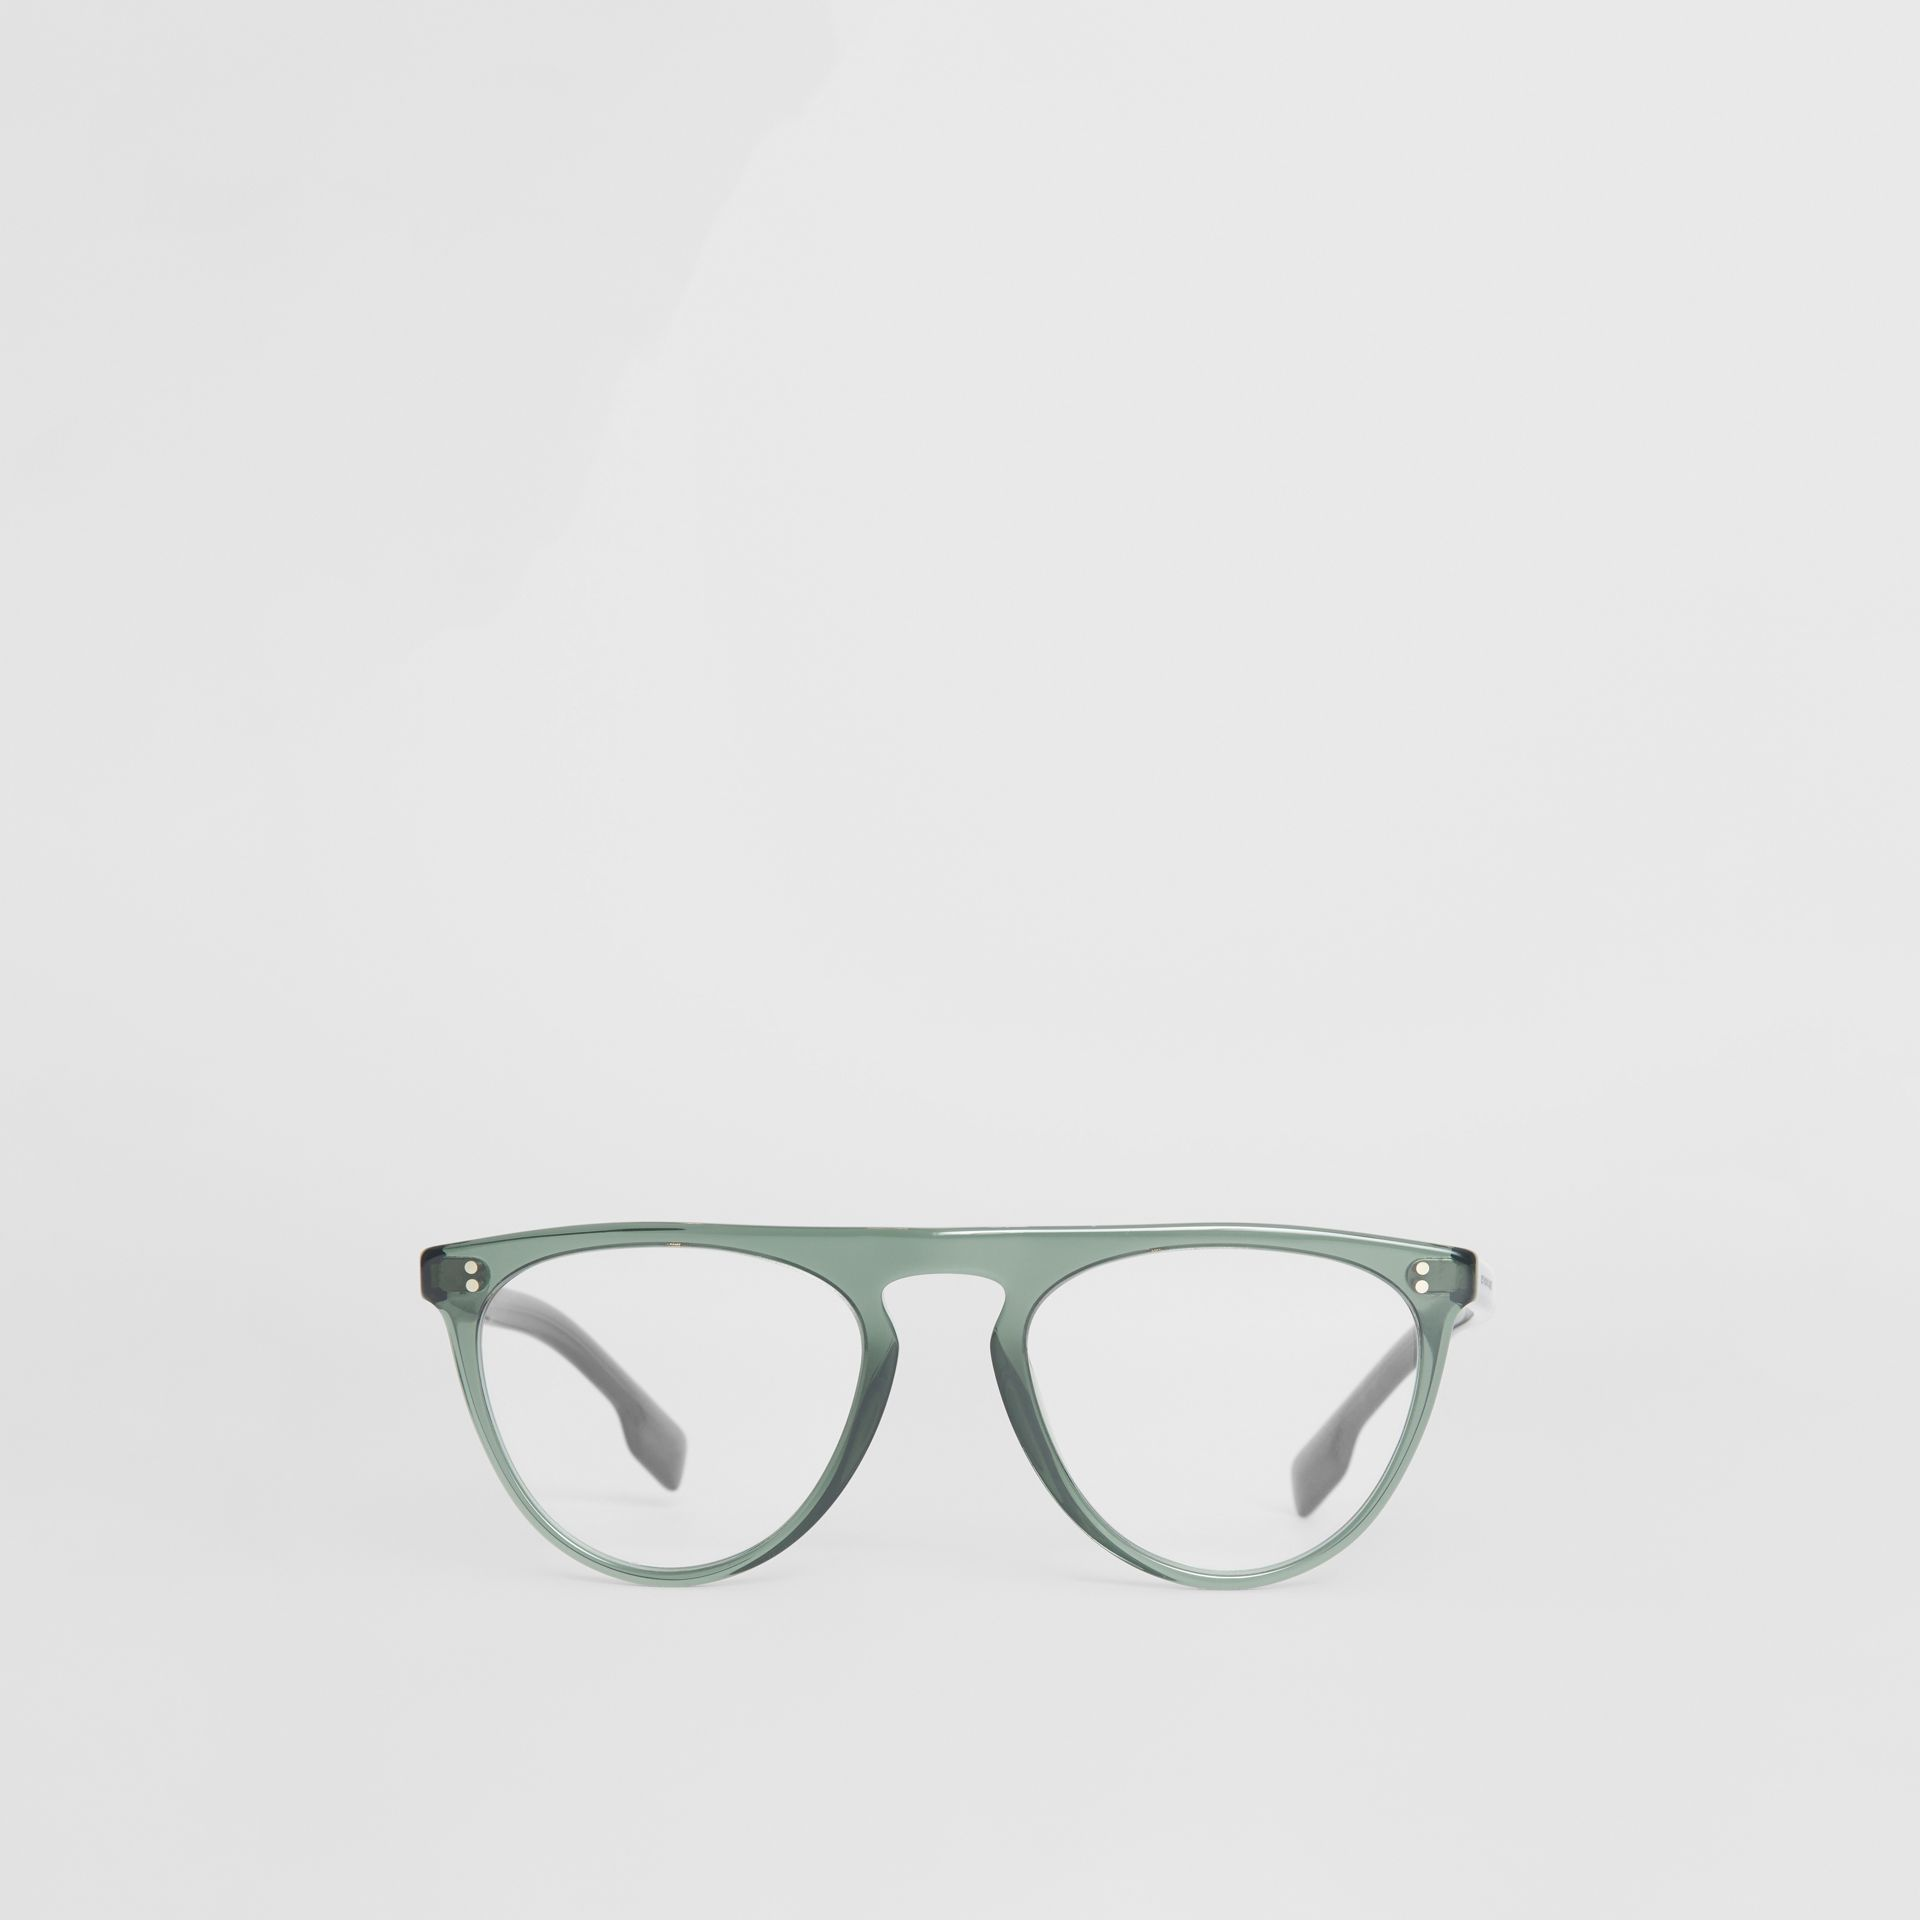 Keyhole D-shaped Optical Frames in Green - Men | Burberry - gallery image 0